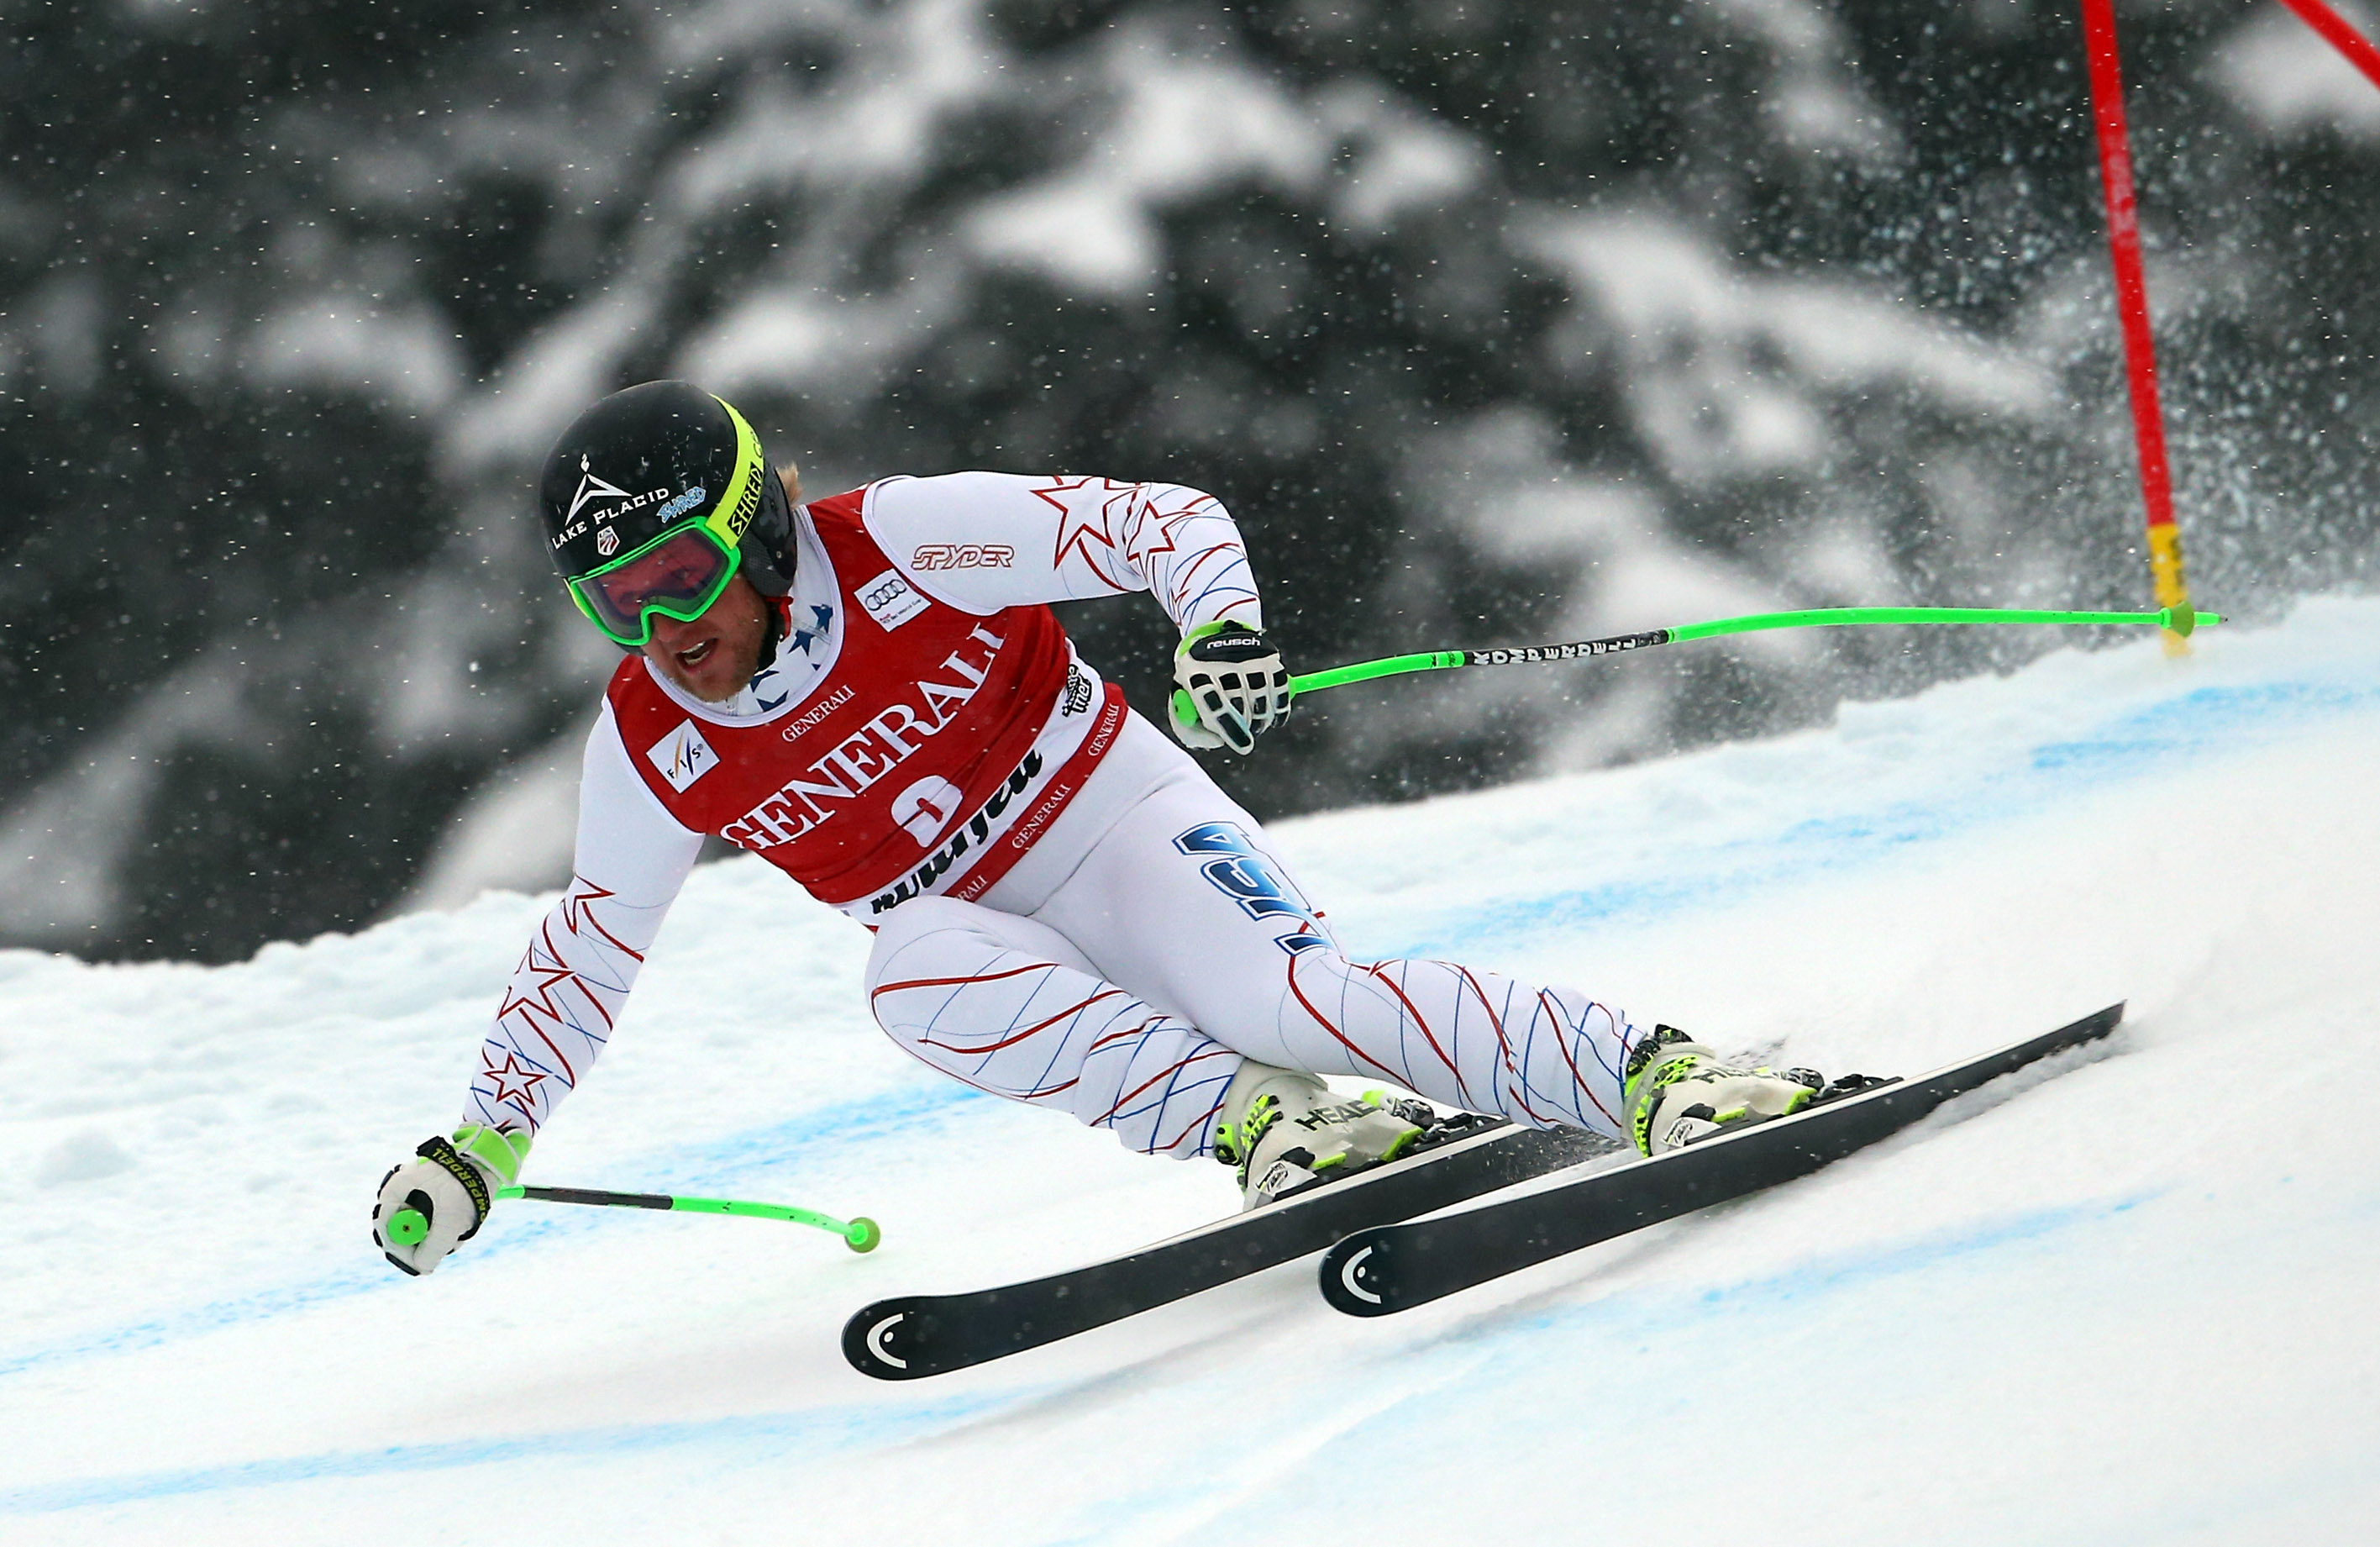 Andrew Weibrecht, of the US, speeds down the course during an alpine ski, men's World Cup super-g, in Kviitfjell, Norway, Sunday, March 2, 2014. (AP Photo/Alessandro Trovati)